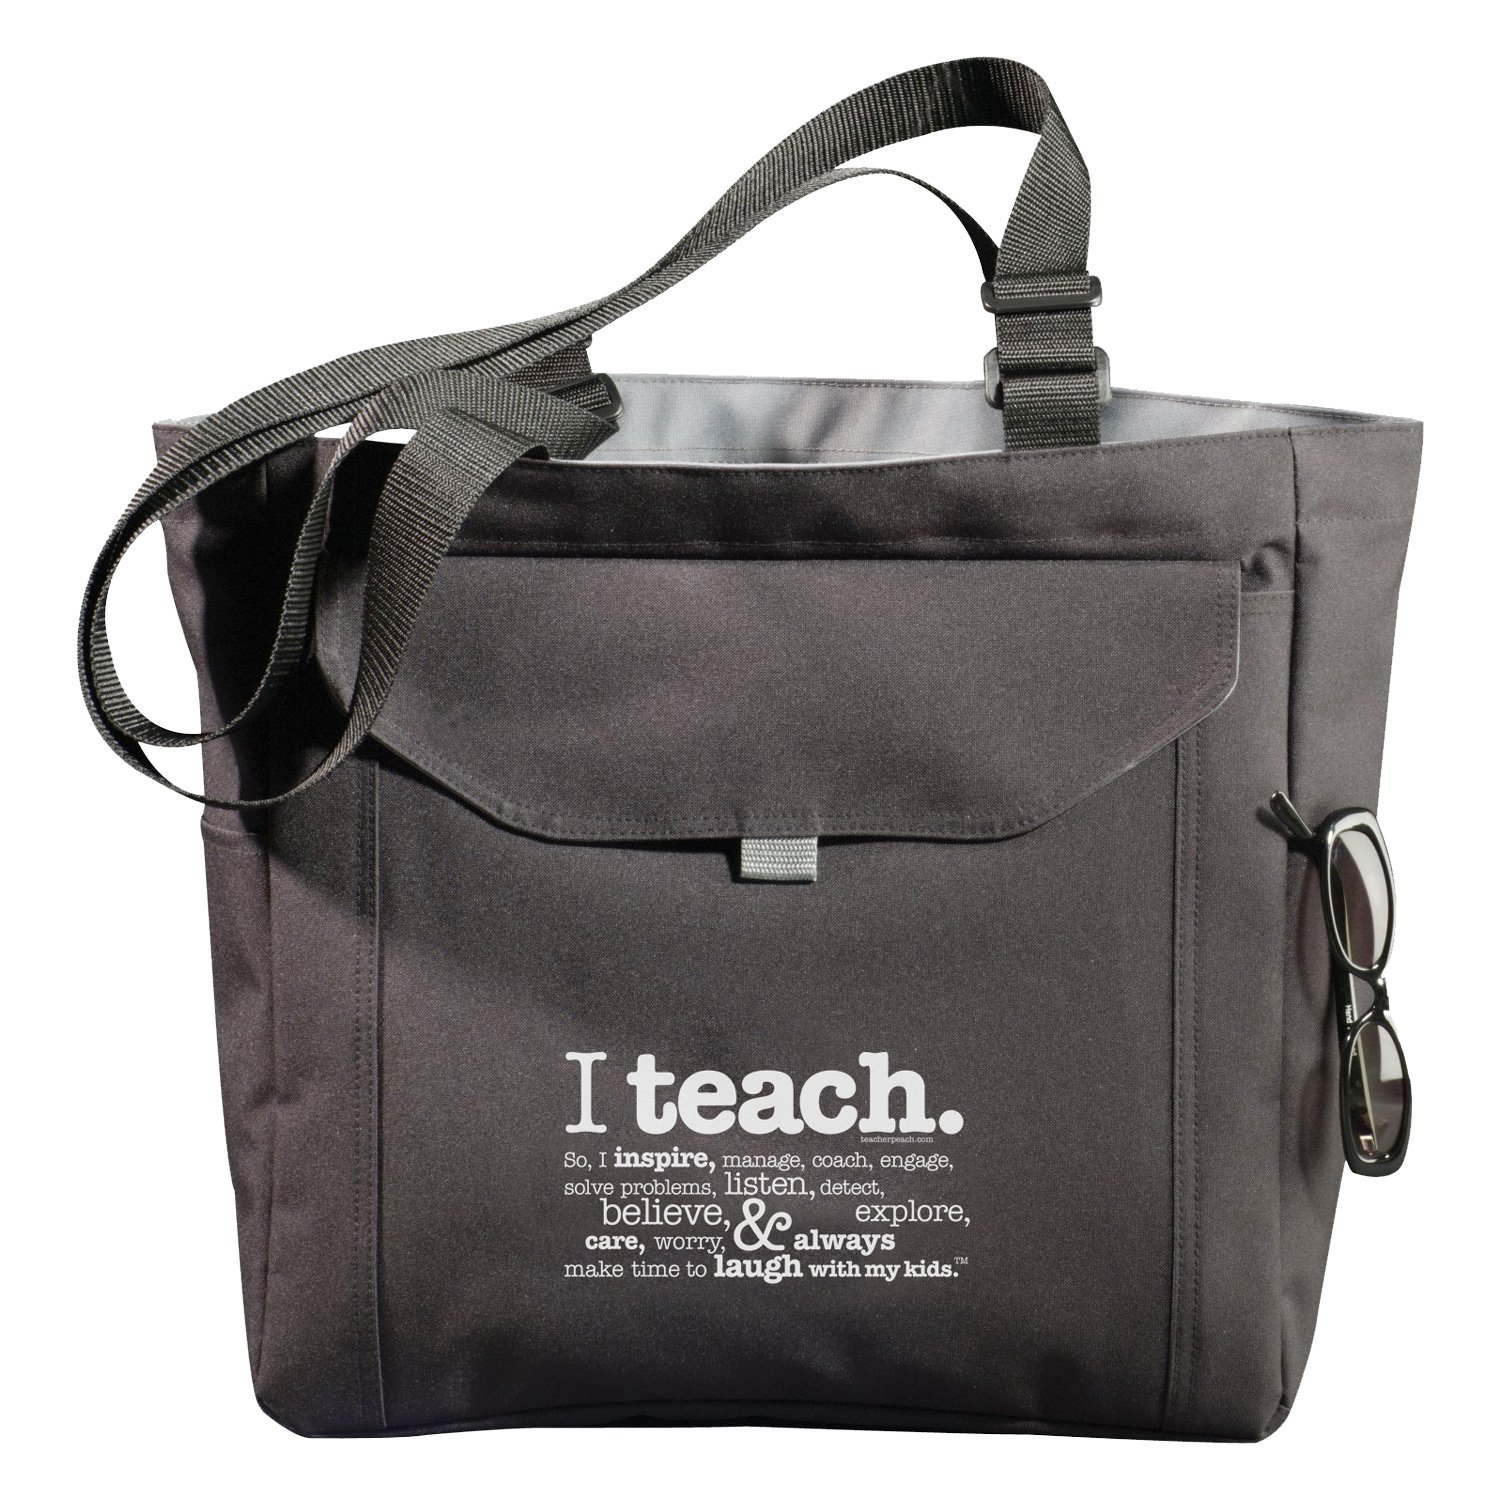 6e535f0fb31 Amazon.com  Teacher Peach Utility Teacher Tote Bag with Pockets, Laptop  Sleeve, and Water Bottle Holder  Clothing